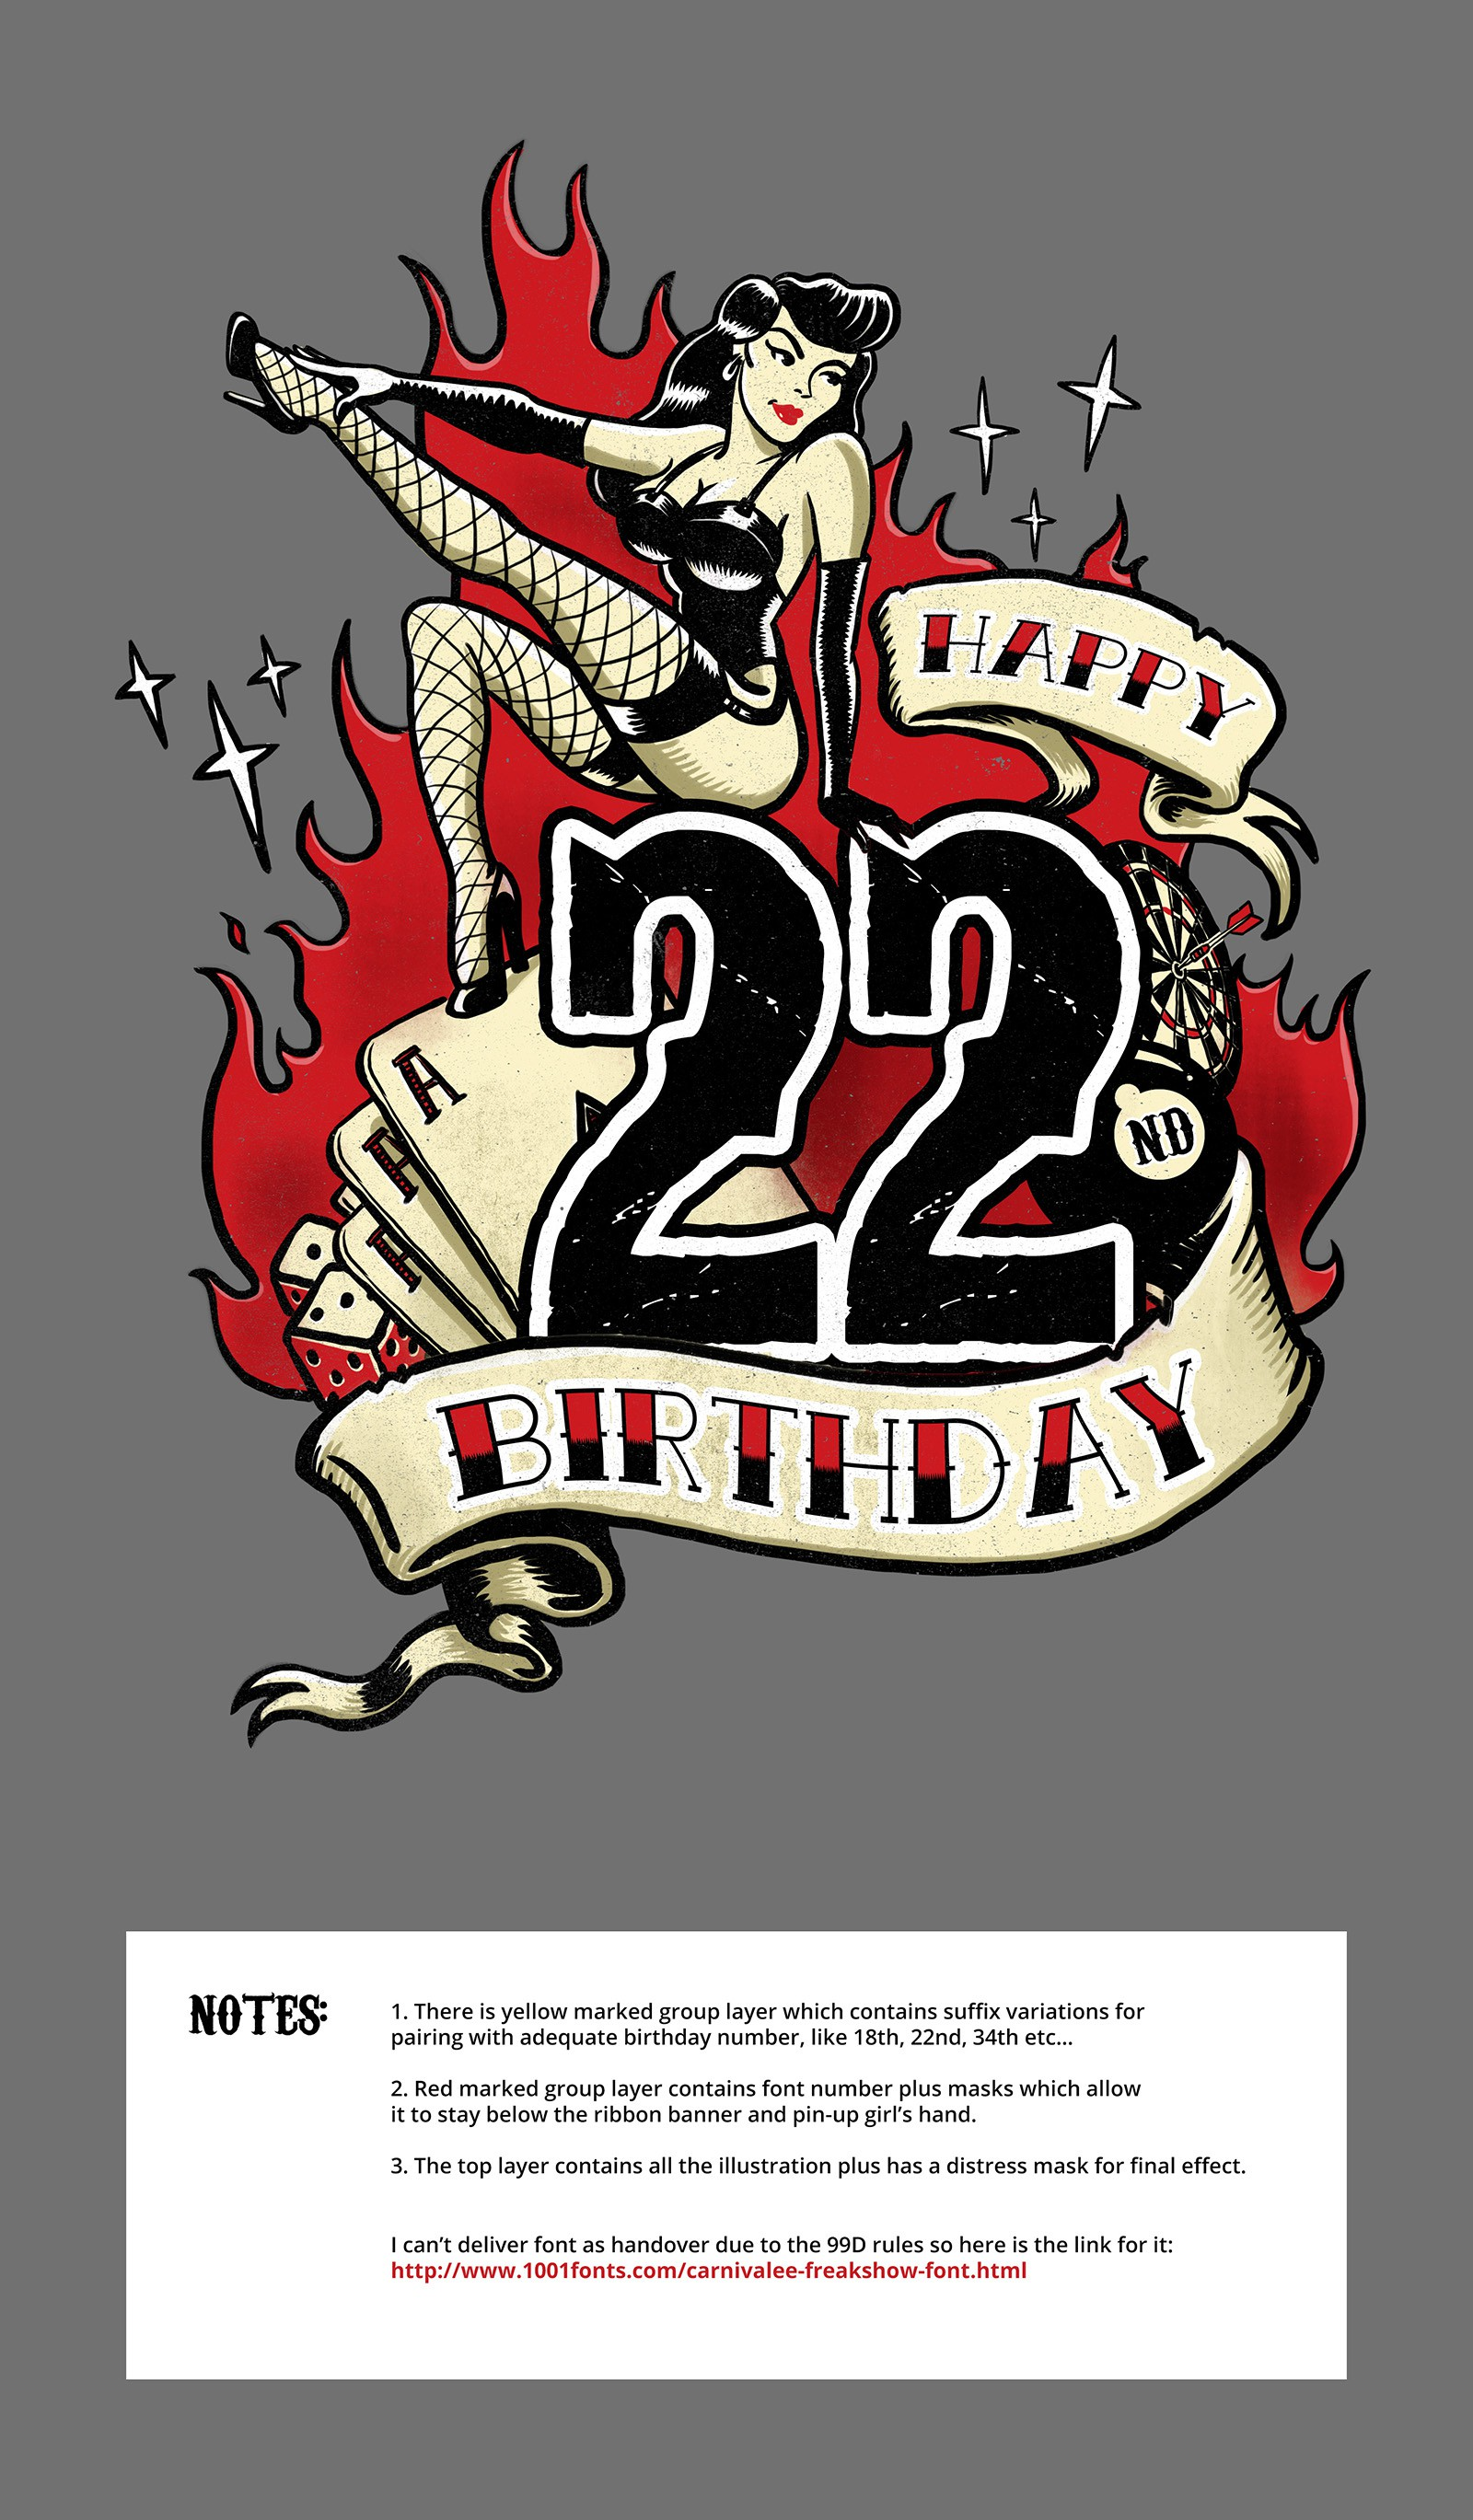 +++ Create a stunning T-Shirt Design for 18th. or 50th. Birtday +++